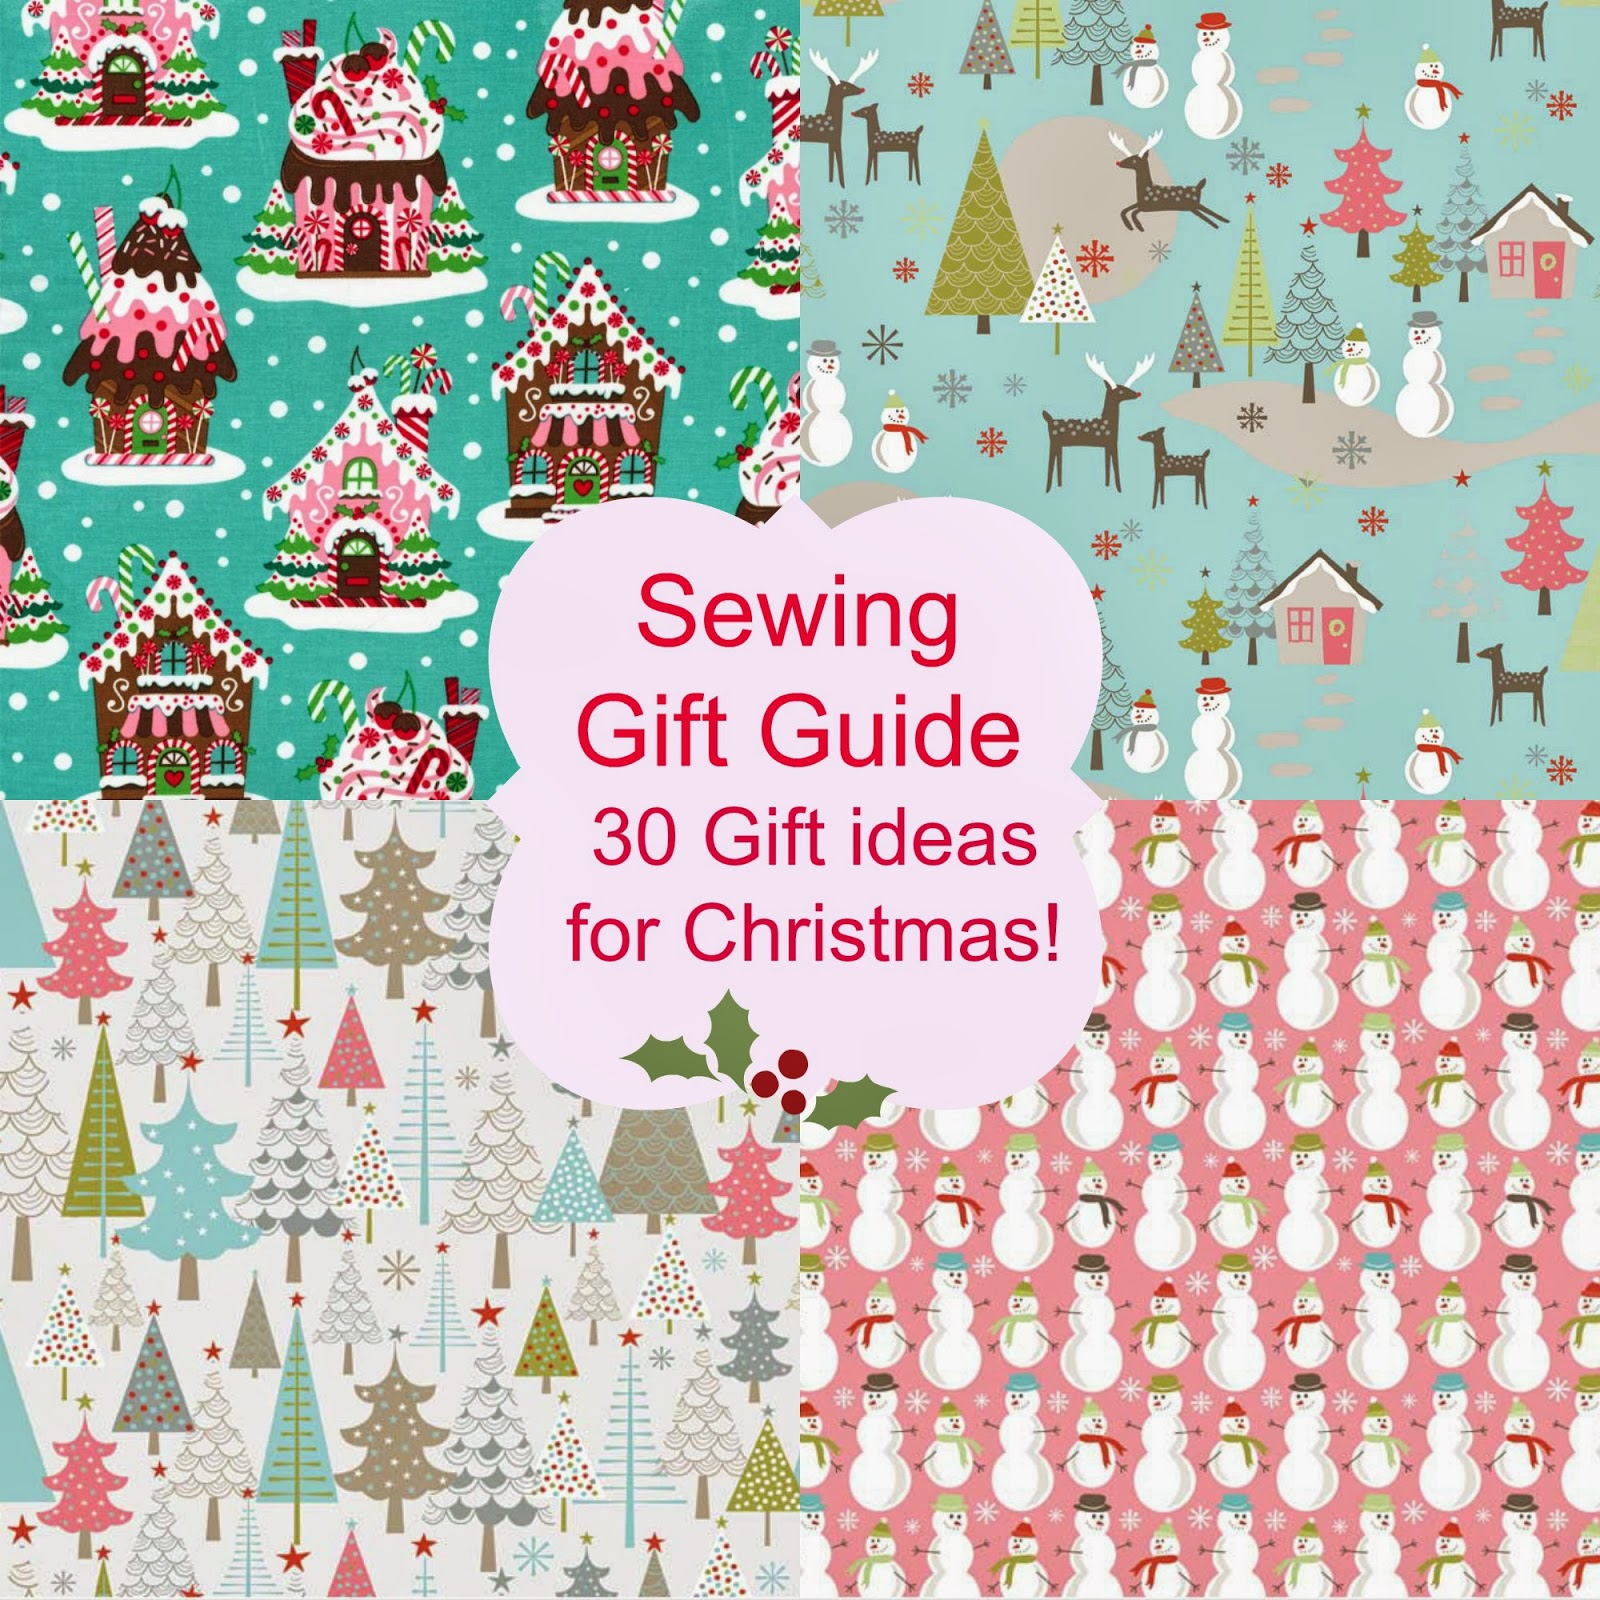 Sewing ideas for christmas gifts - September 2018 Sale